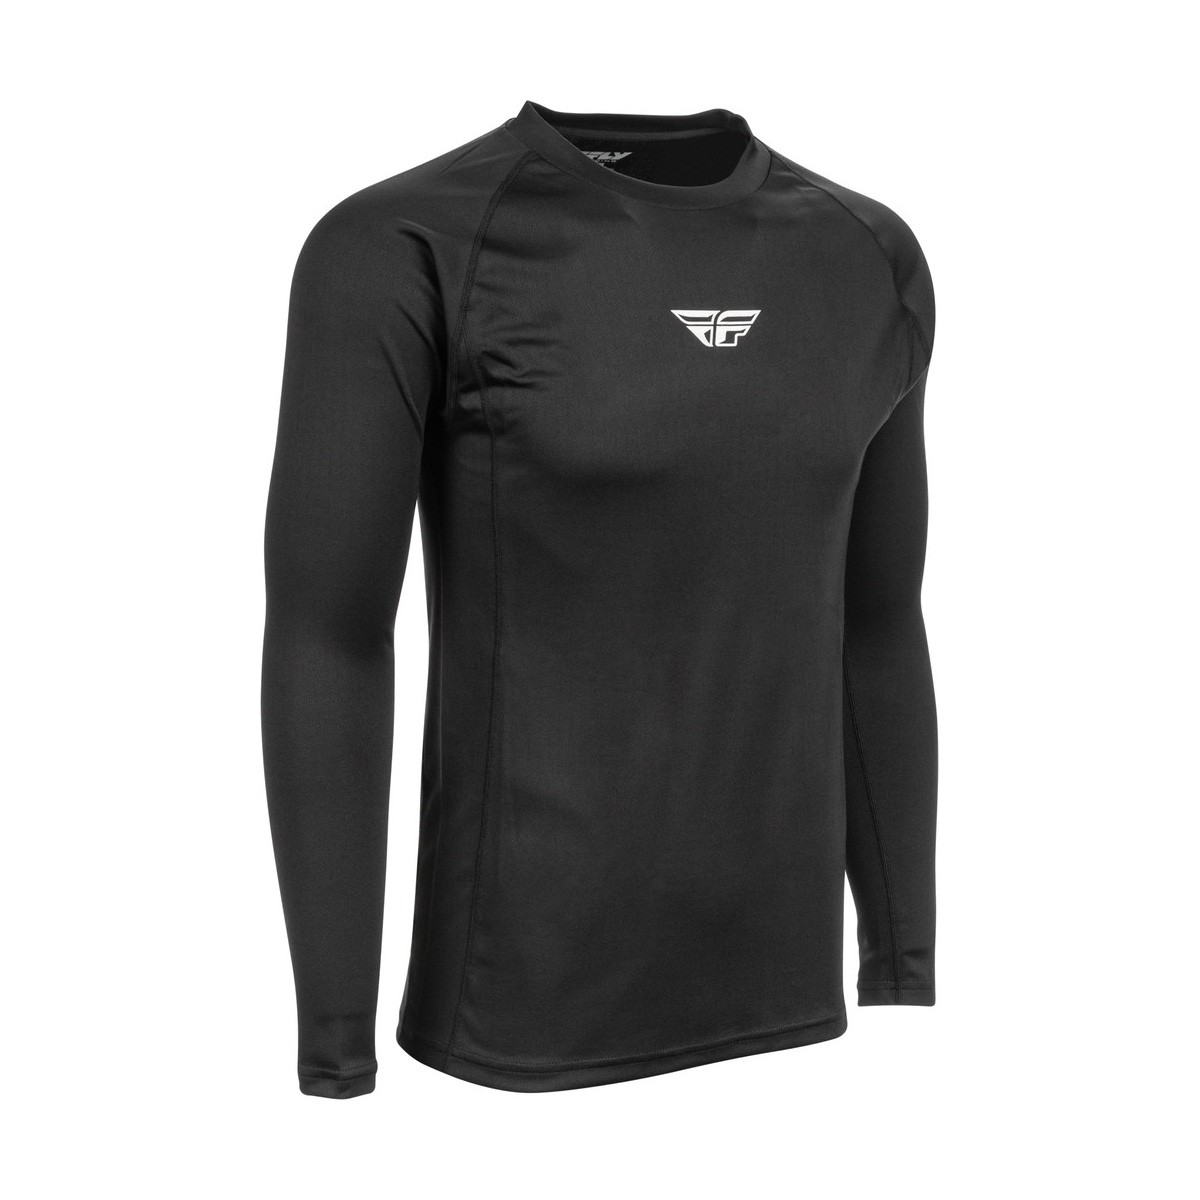 FLY HEAVYWEIGHT BASE LAYER TOP